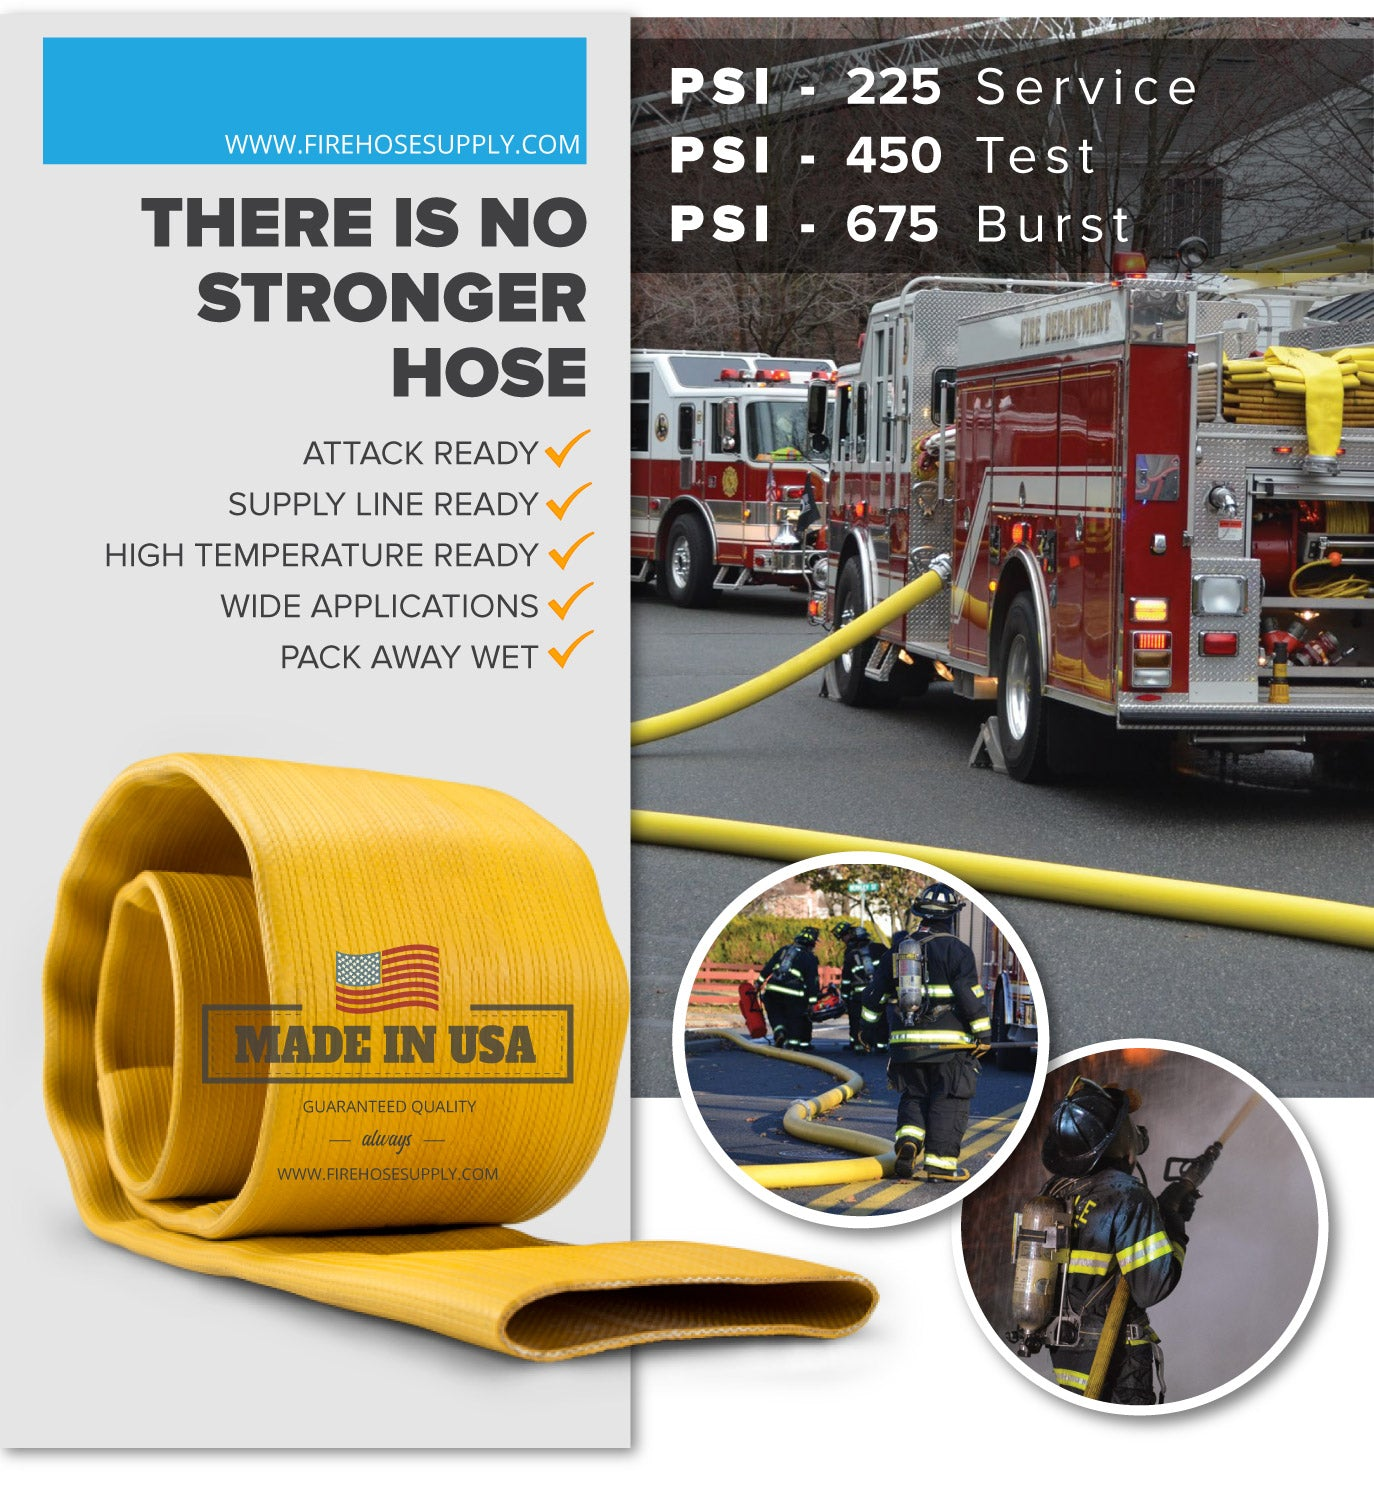 6 Inch Rubber Fire Hose Material Only Supply Ready Firefighter Yellow 450 PSI Test